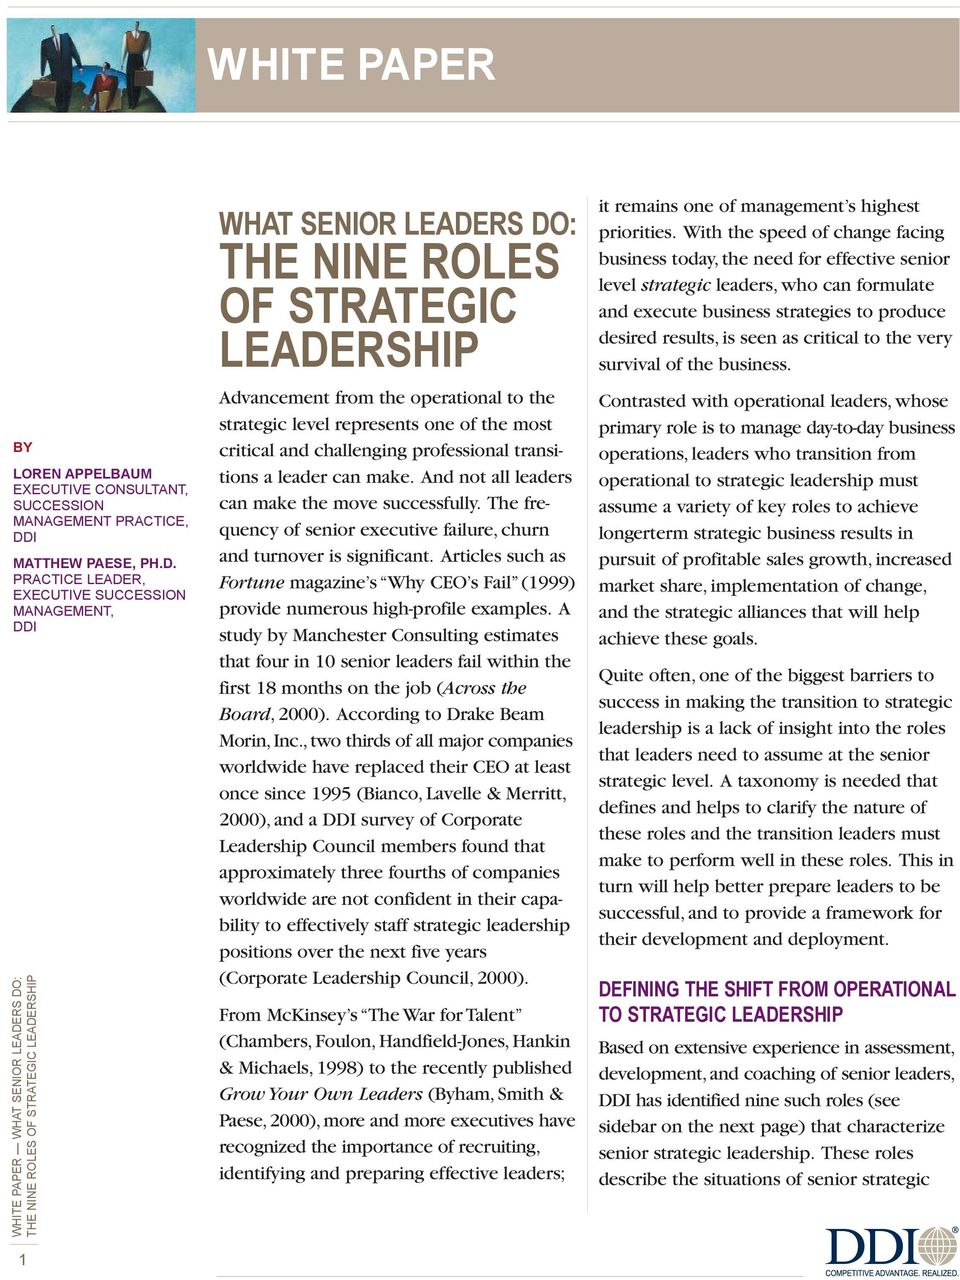 PRACTICE LEADER, EXECUTIVE SUCCESSION MANAGEMENT, DDI WHITE PAPER WHAT SENIOR LEADERS DO: 1 WHAT SENIOR LEADERS DO: THE NINE ROLES OF STRATEGIC LEADERSHIP Advancement from the operational to the